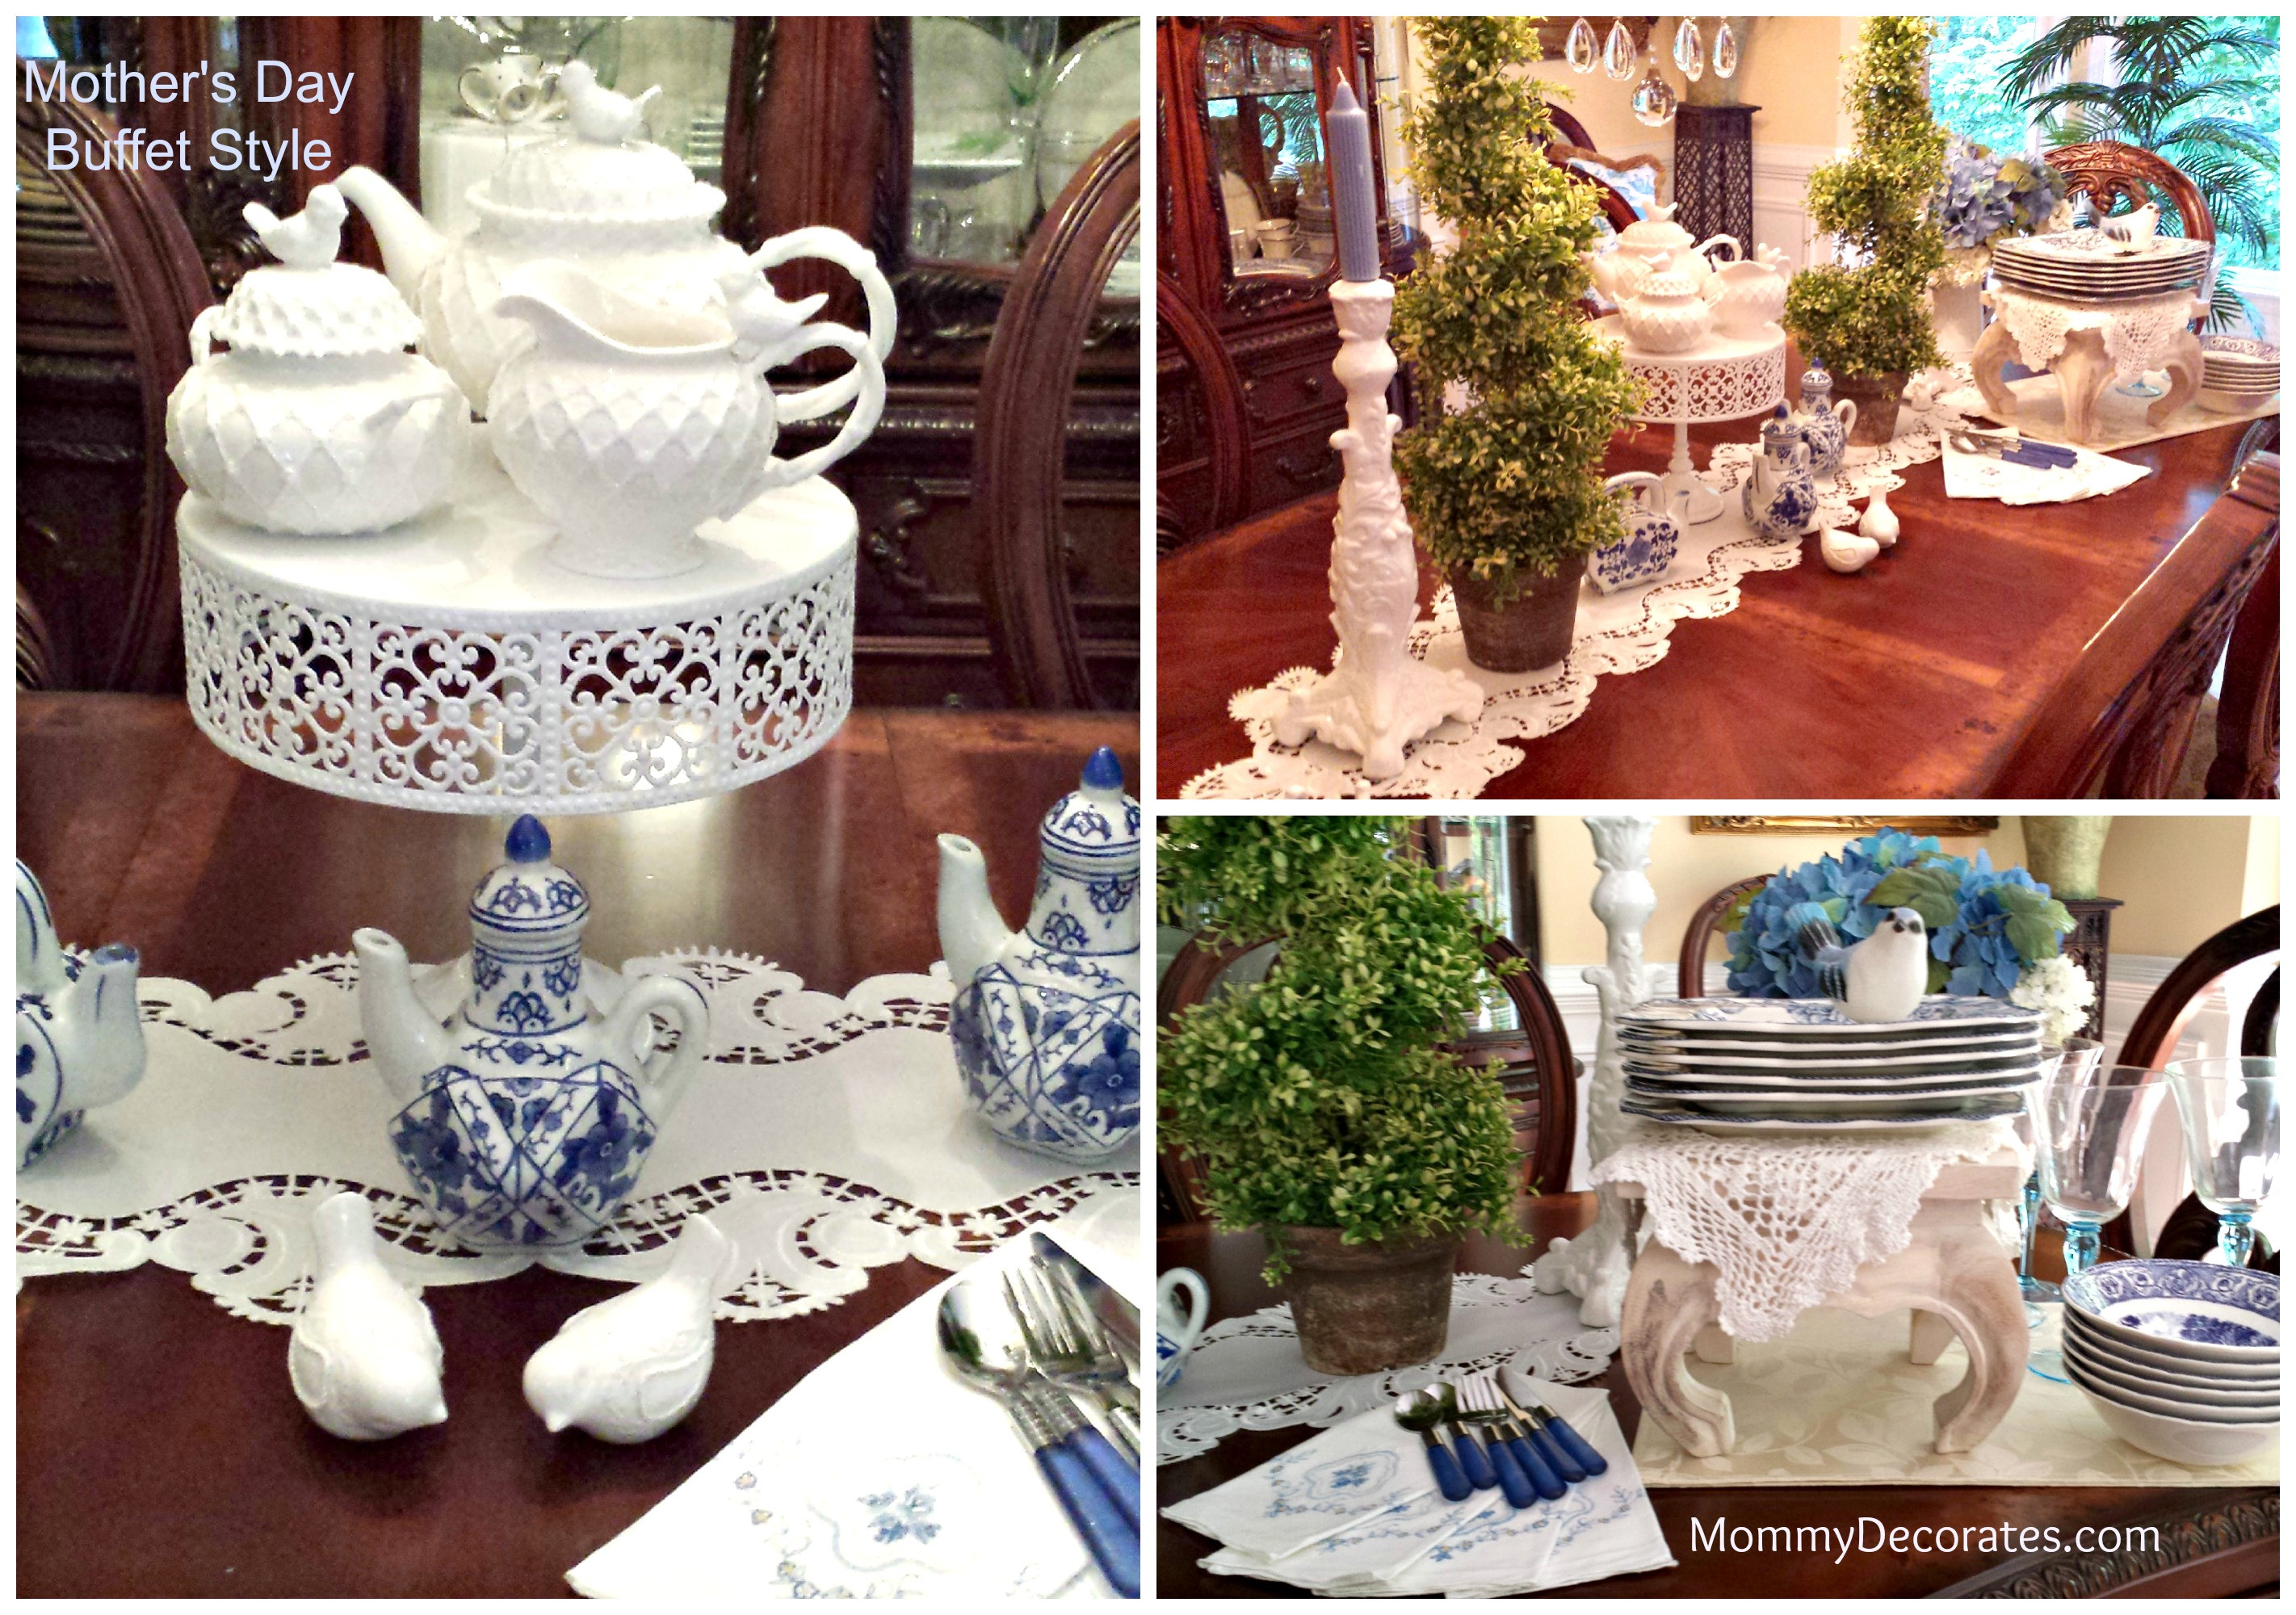 Mother'S Day Dinner Recipes  Mother 039 s Day Brunch Buffet Style Table Setting Ideas